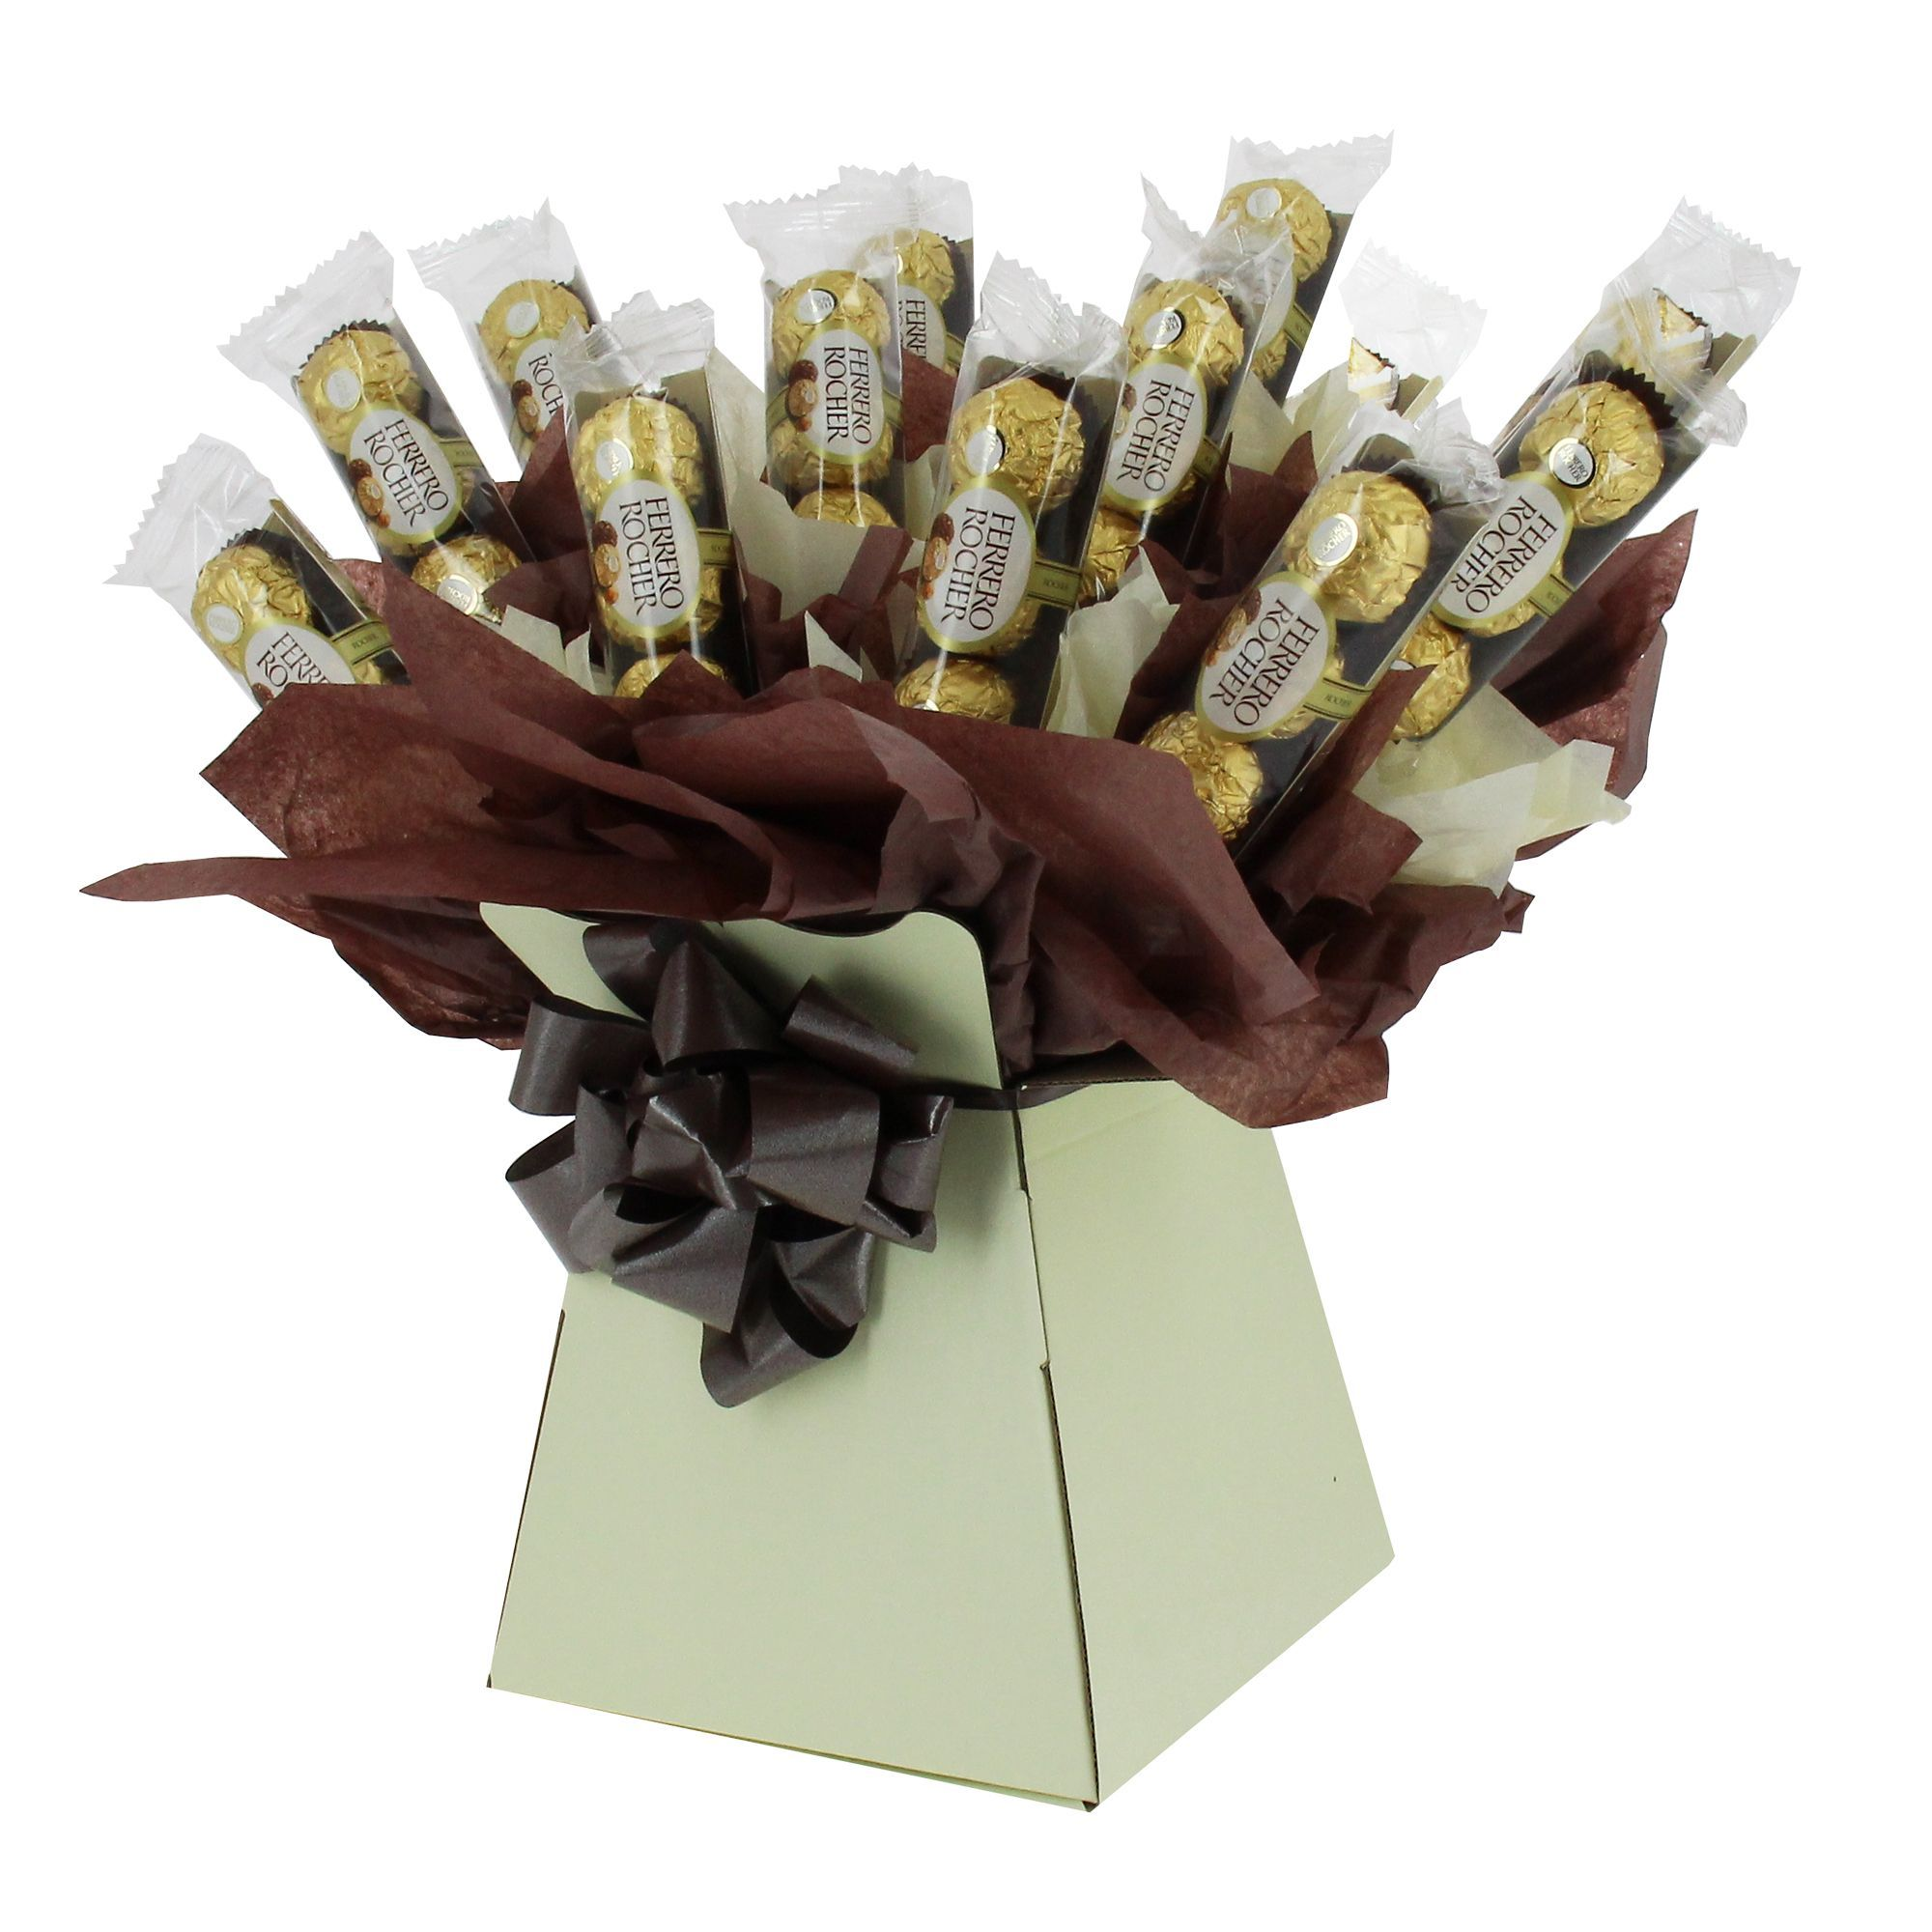 Treat your girlfriend to this romantic ferrero rocher bouquet on treat your girlfriend to this romantic ferrero rocher bouquet on valentines day available at sortedgifts negle Choice Image